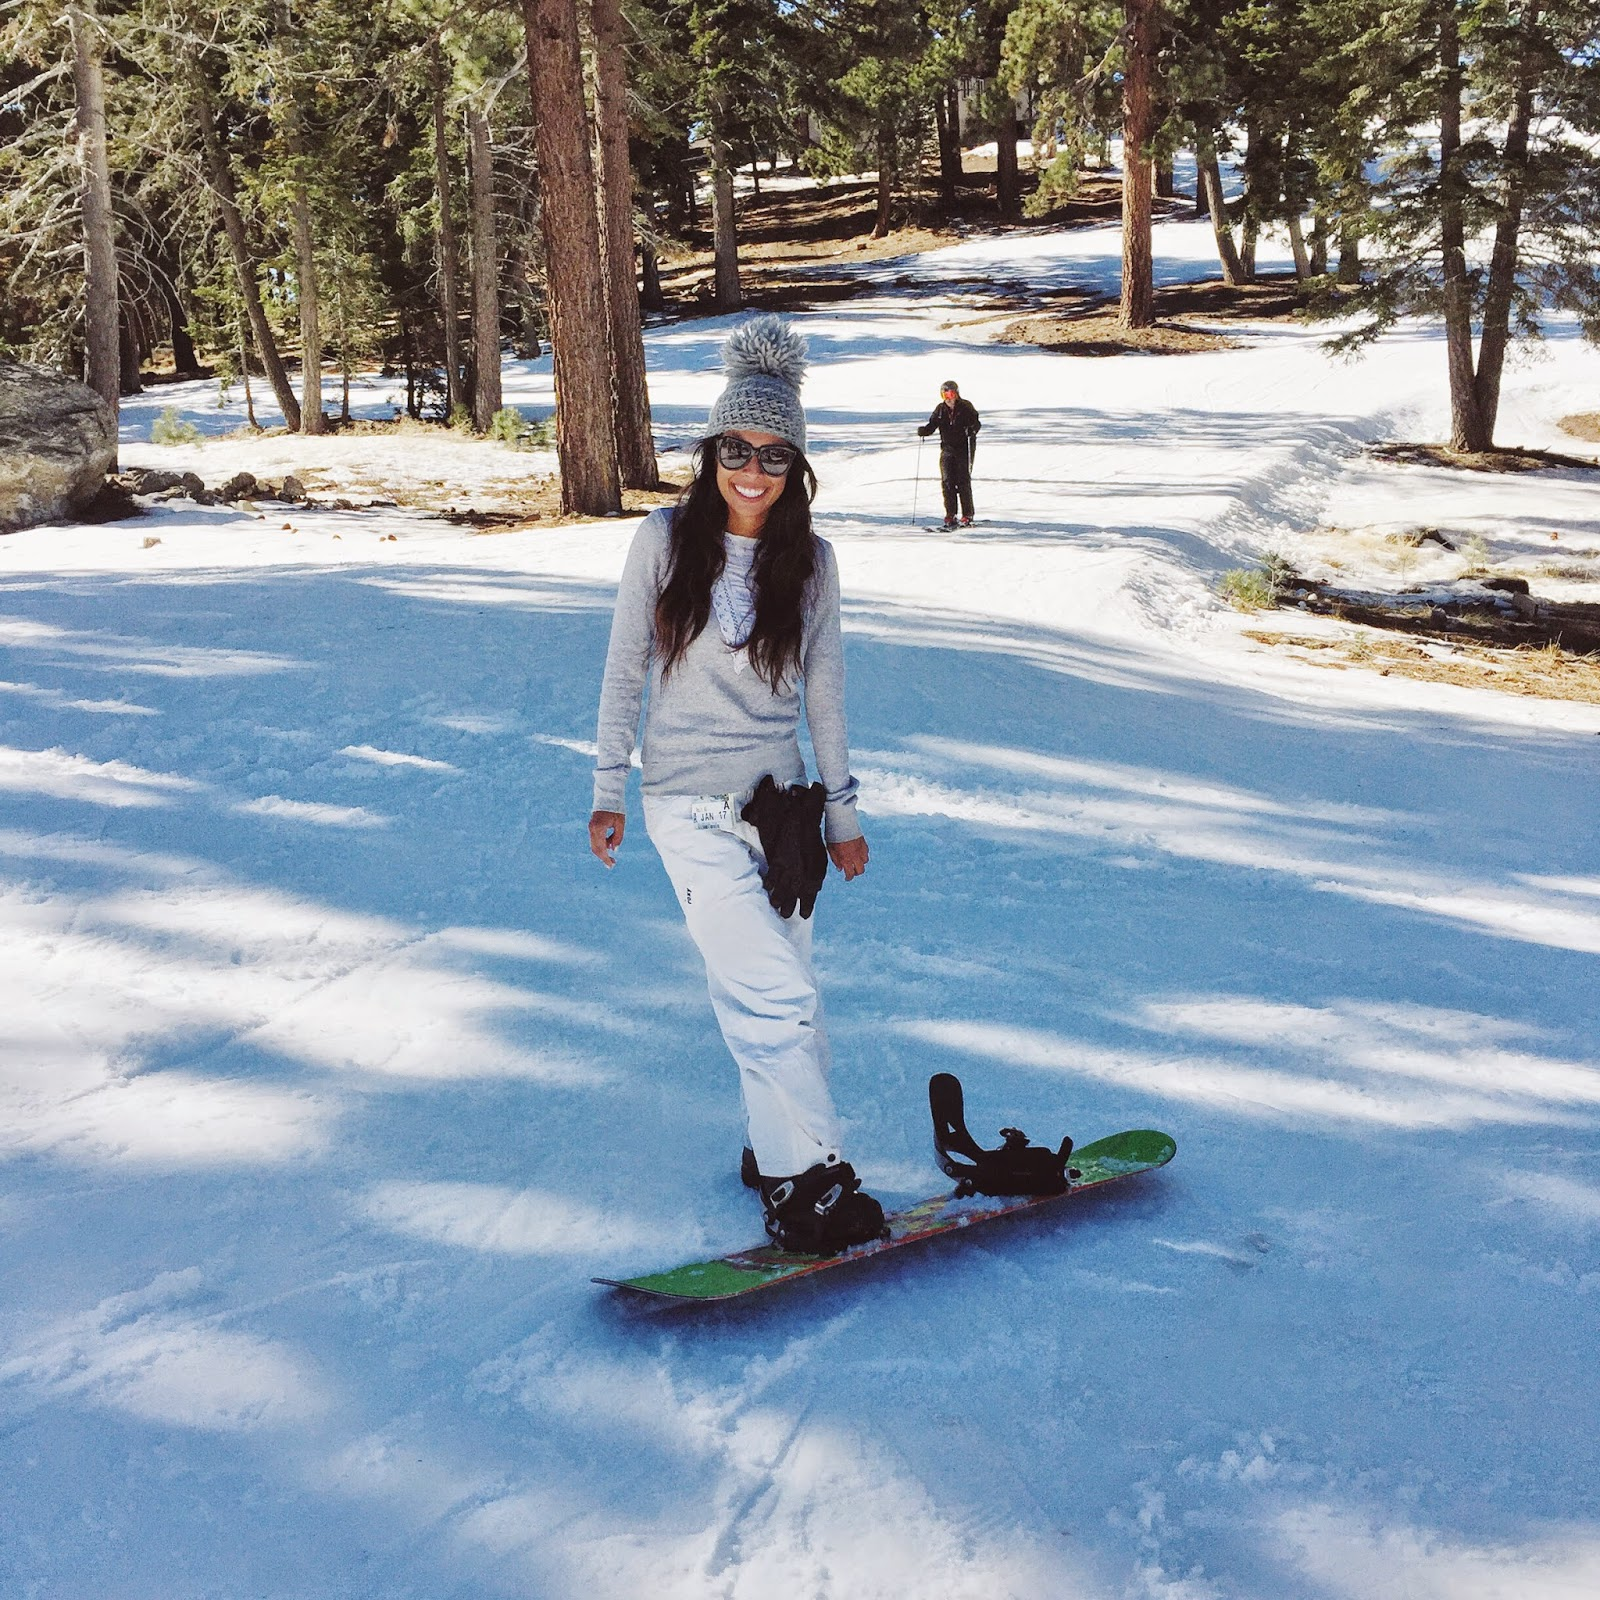 adult summer camp, adult winter camp, camp no counselors, games, snowboarding,